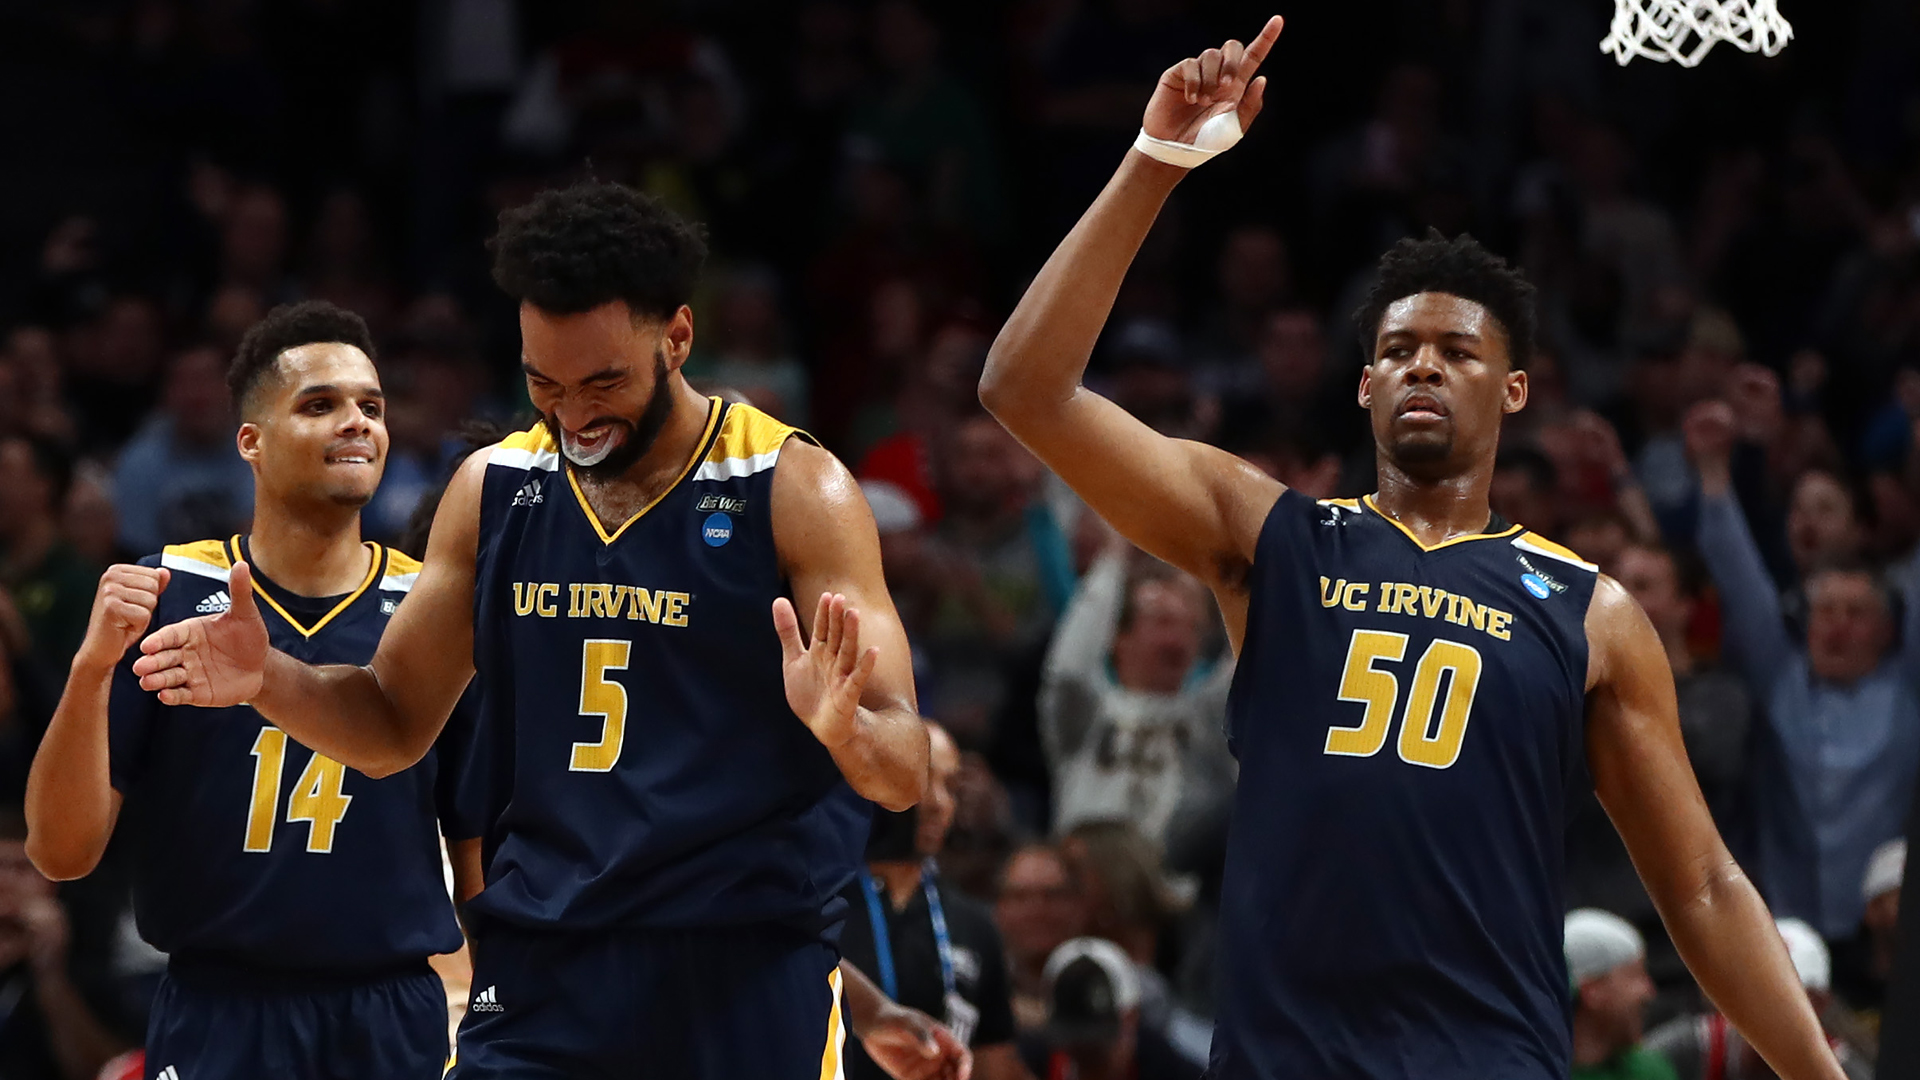 Jonathan Galloway #5 and Evan Leonard #14 and Elston Jones #50 of the UC Irvine Anteaters celebrate a win against the Kansas State Wildcats for their first school tournament win during the first round of the 2019 NCAA Men's Basketball Tournament at SAP Center on March 22, 2019, in San Jose. (Credit: Ezra Shaw/Getty Images)